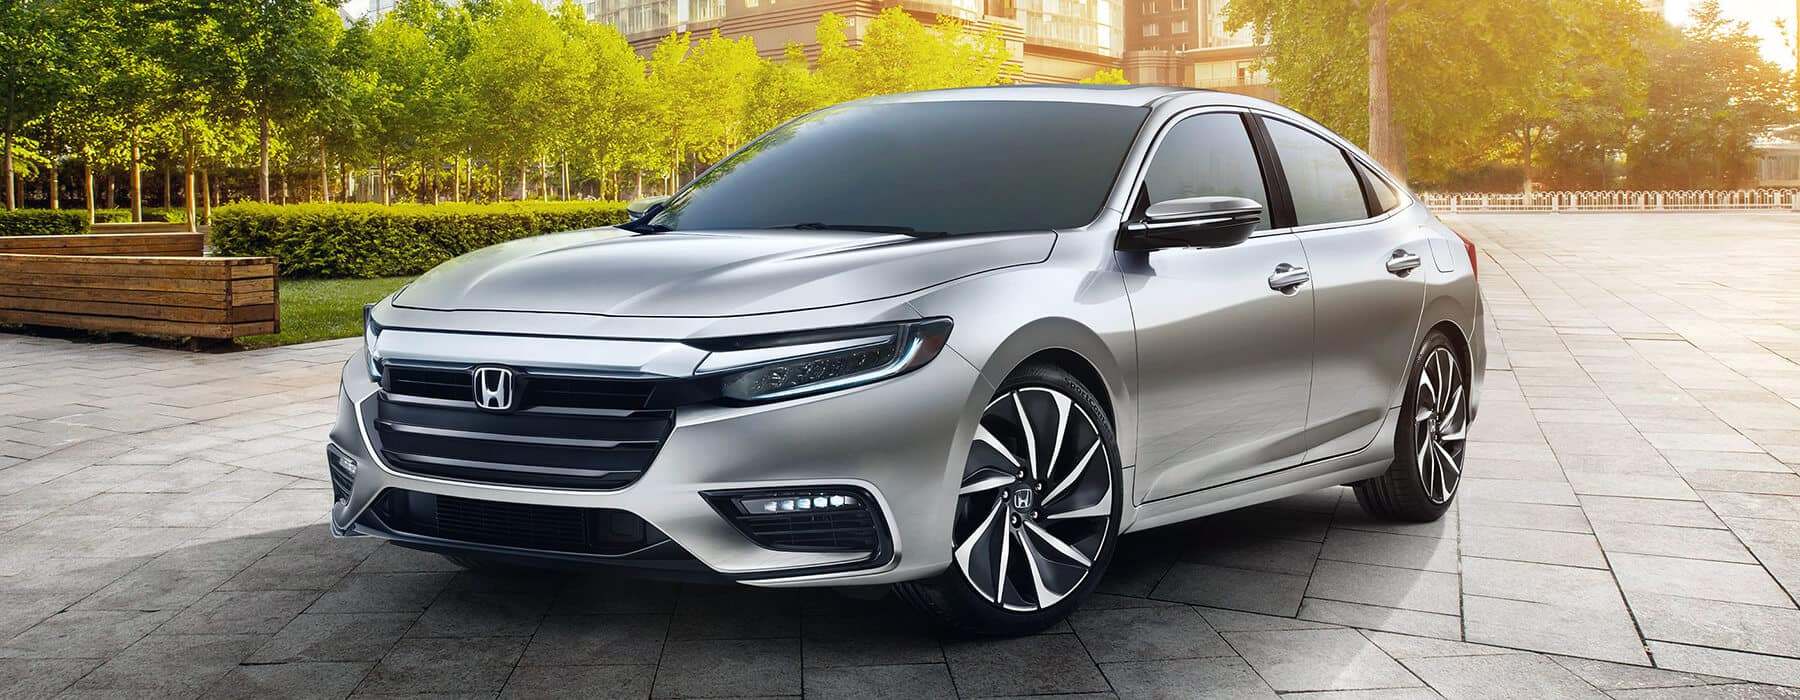 2019 Honda Insight Background